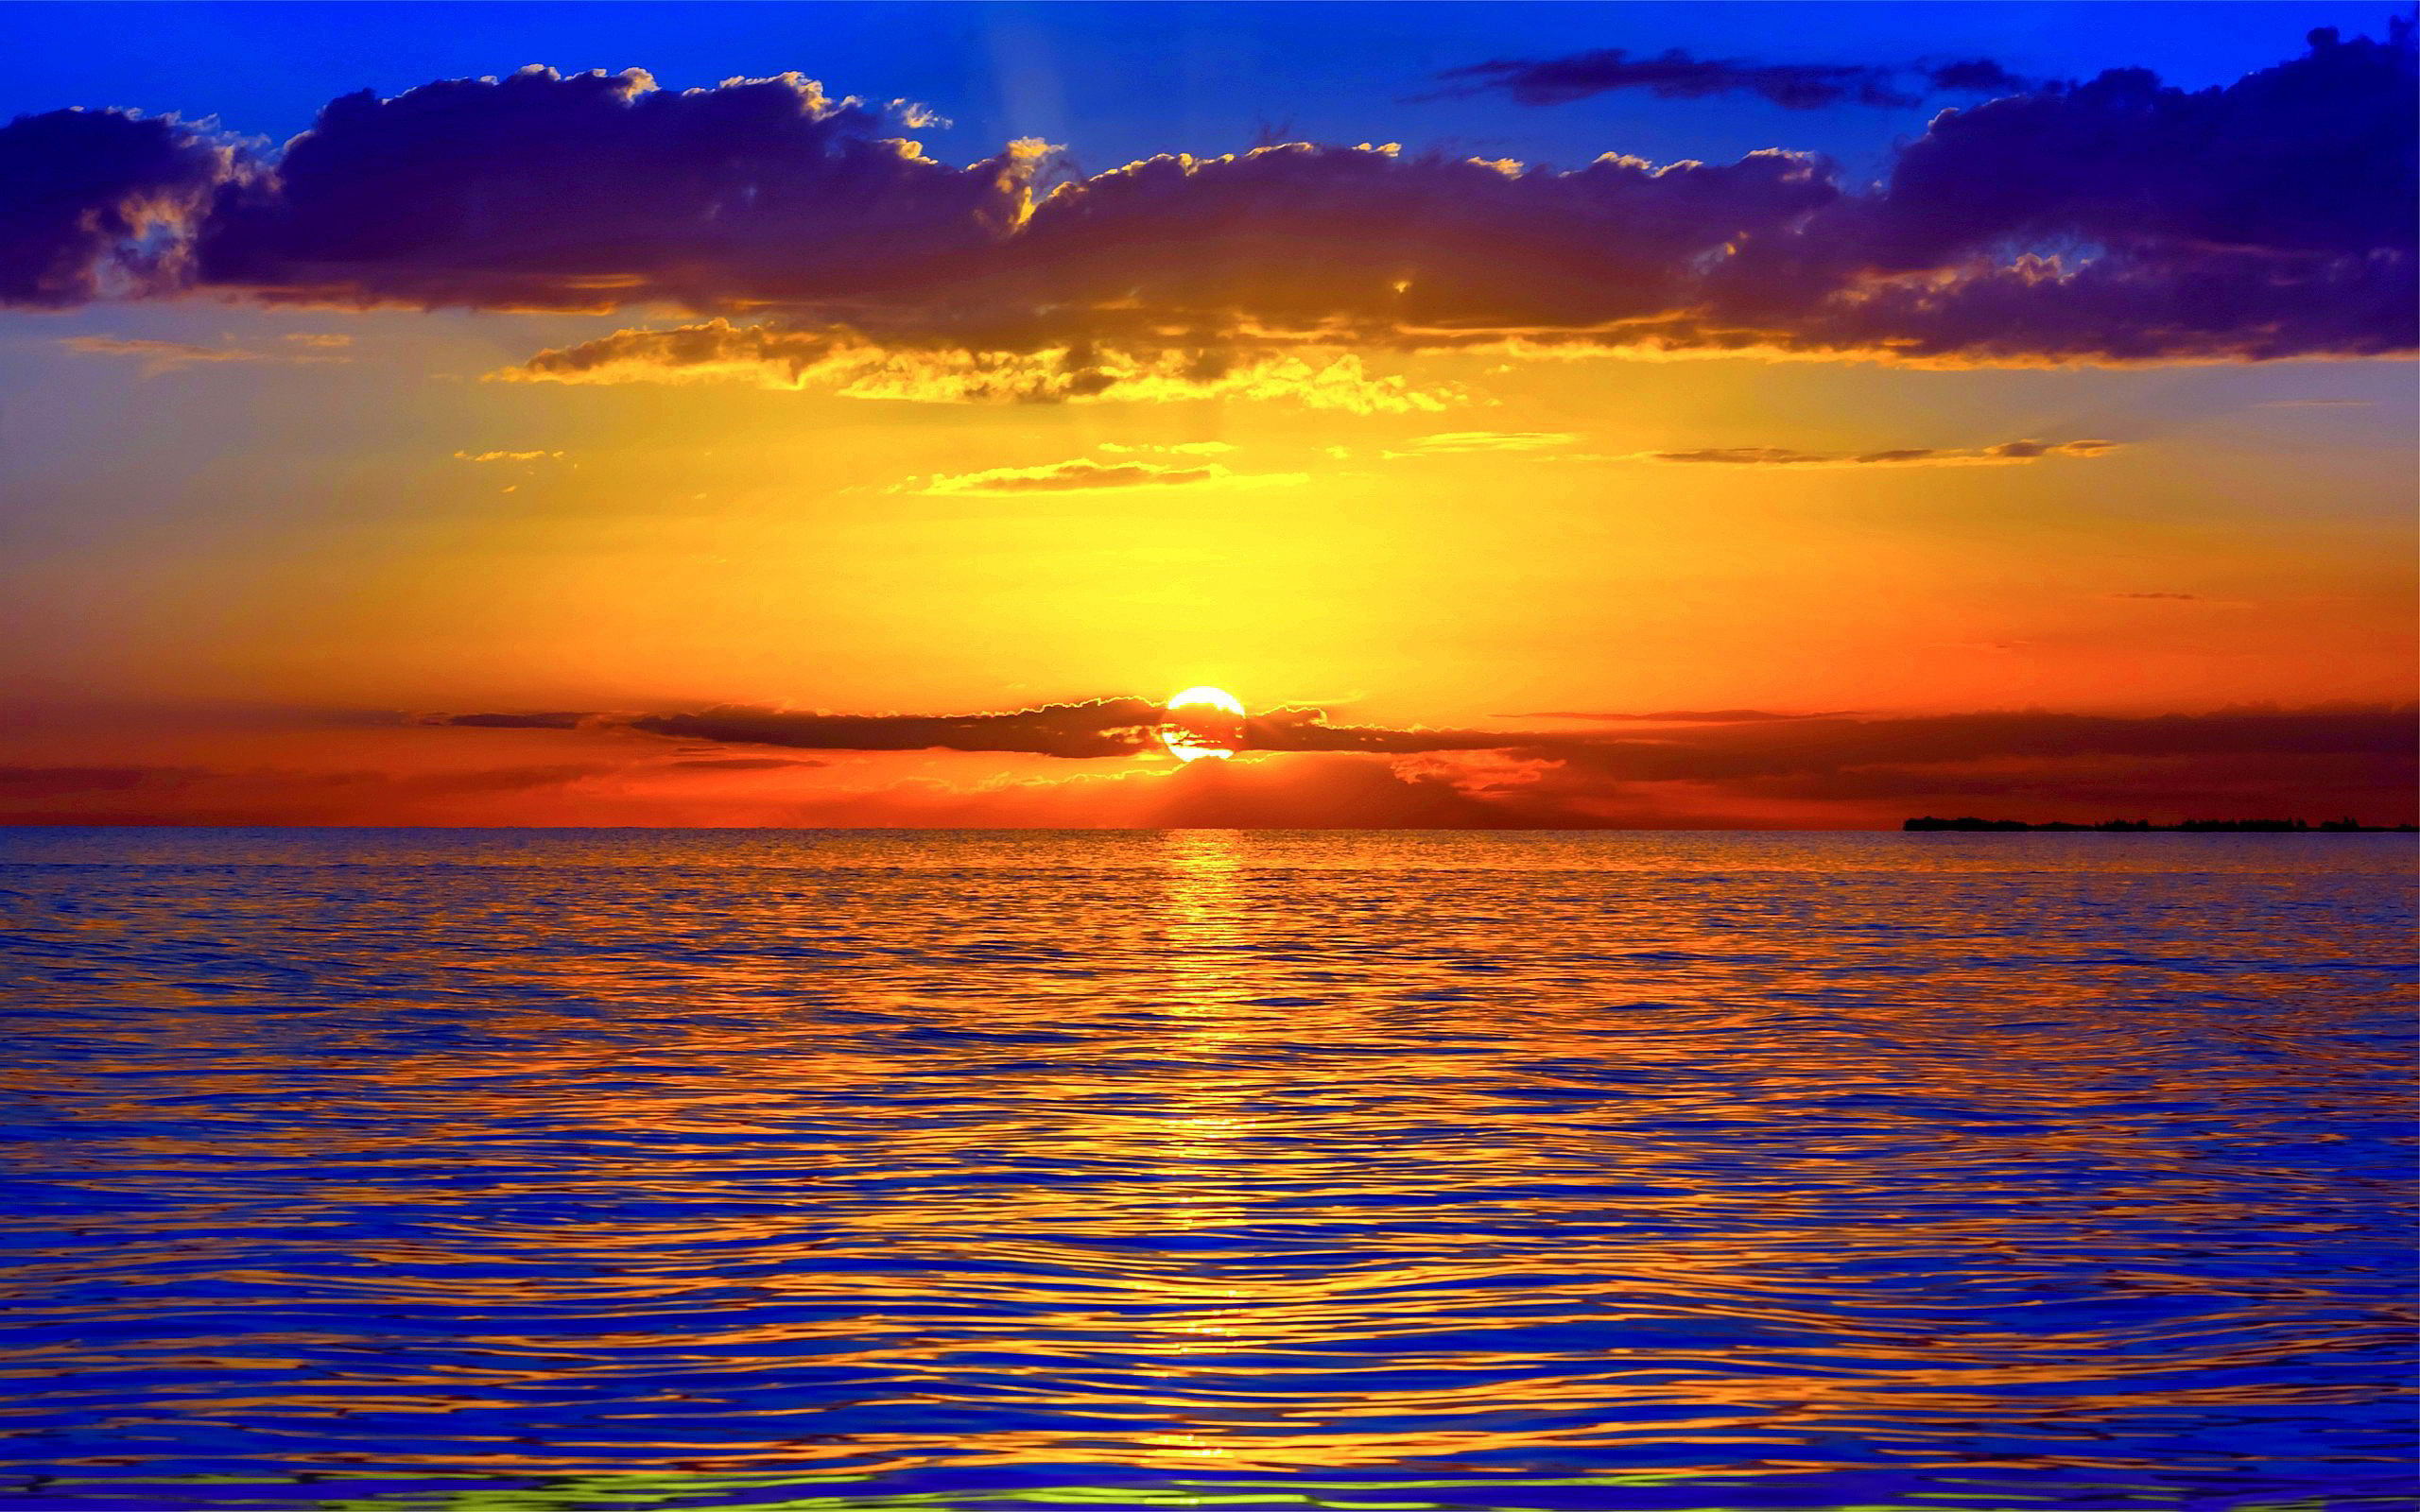 2560x1600 Only the best free ocean sunsets wallpapers you can find online! Ocean  sunsets wallpapers and background images for desktop, iPhone, Android and  any screen ...